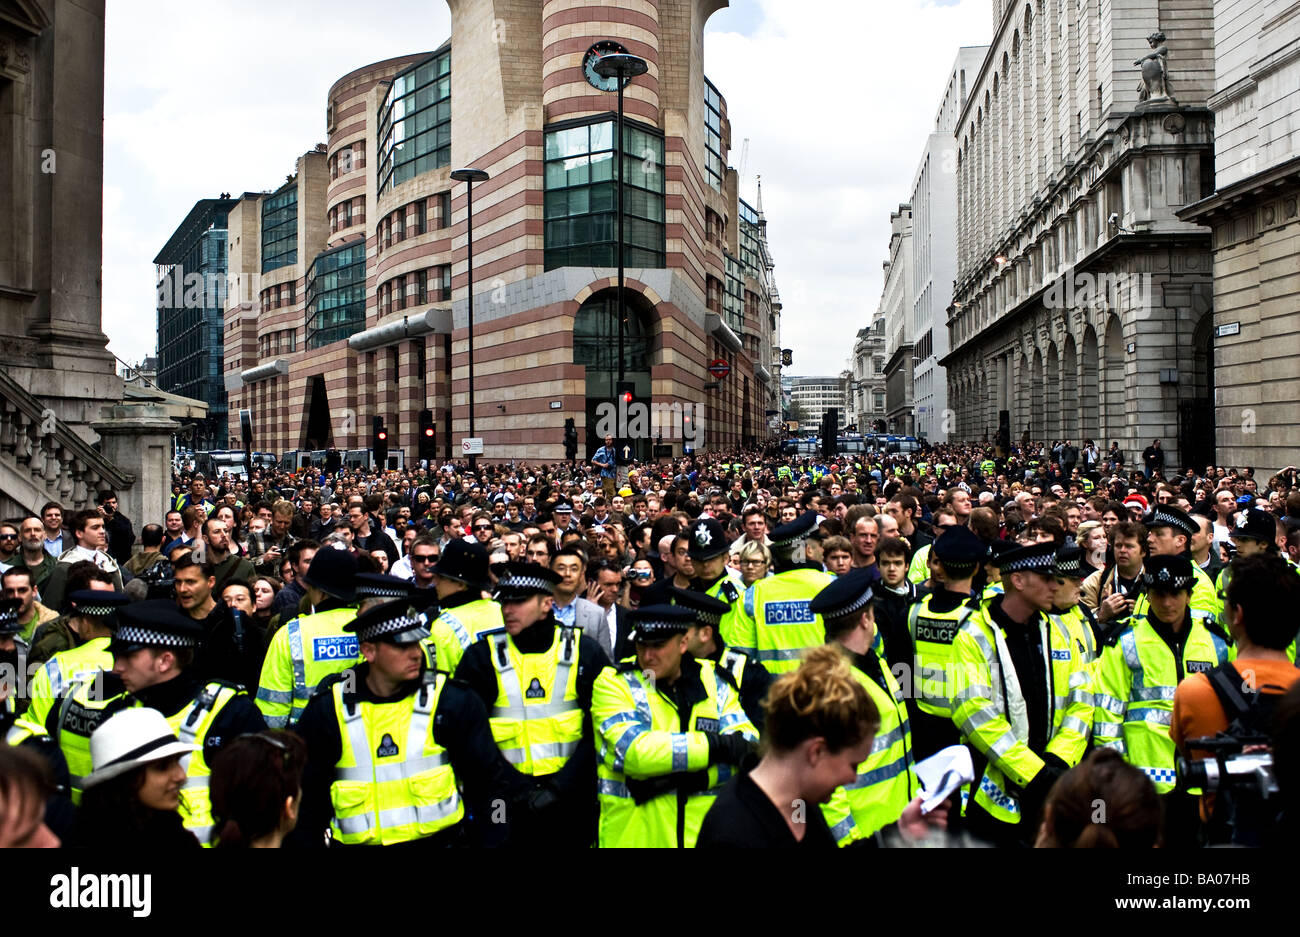 Metropolitan Police cordon holding back protesters at the G20 demonstration in the City of London. - Stock Image